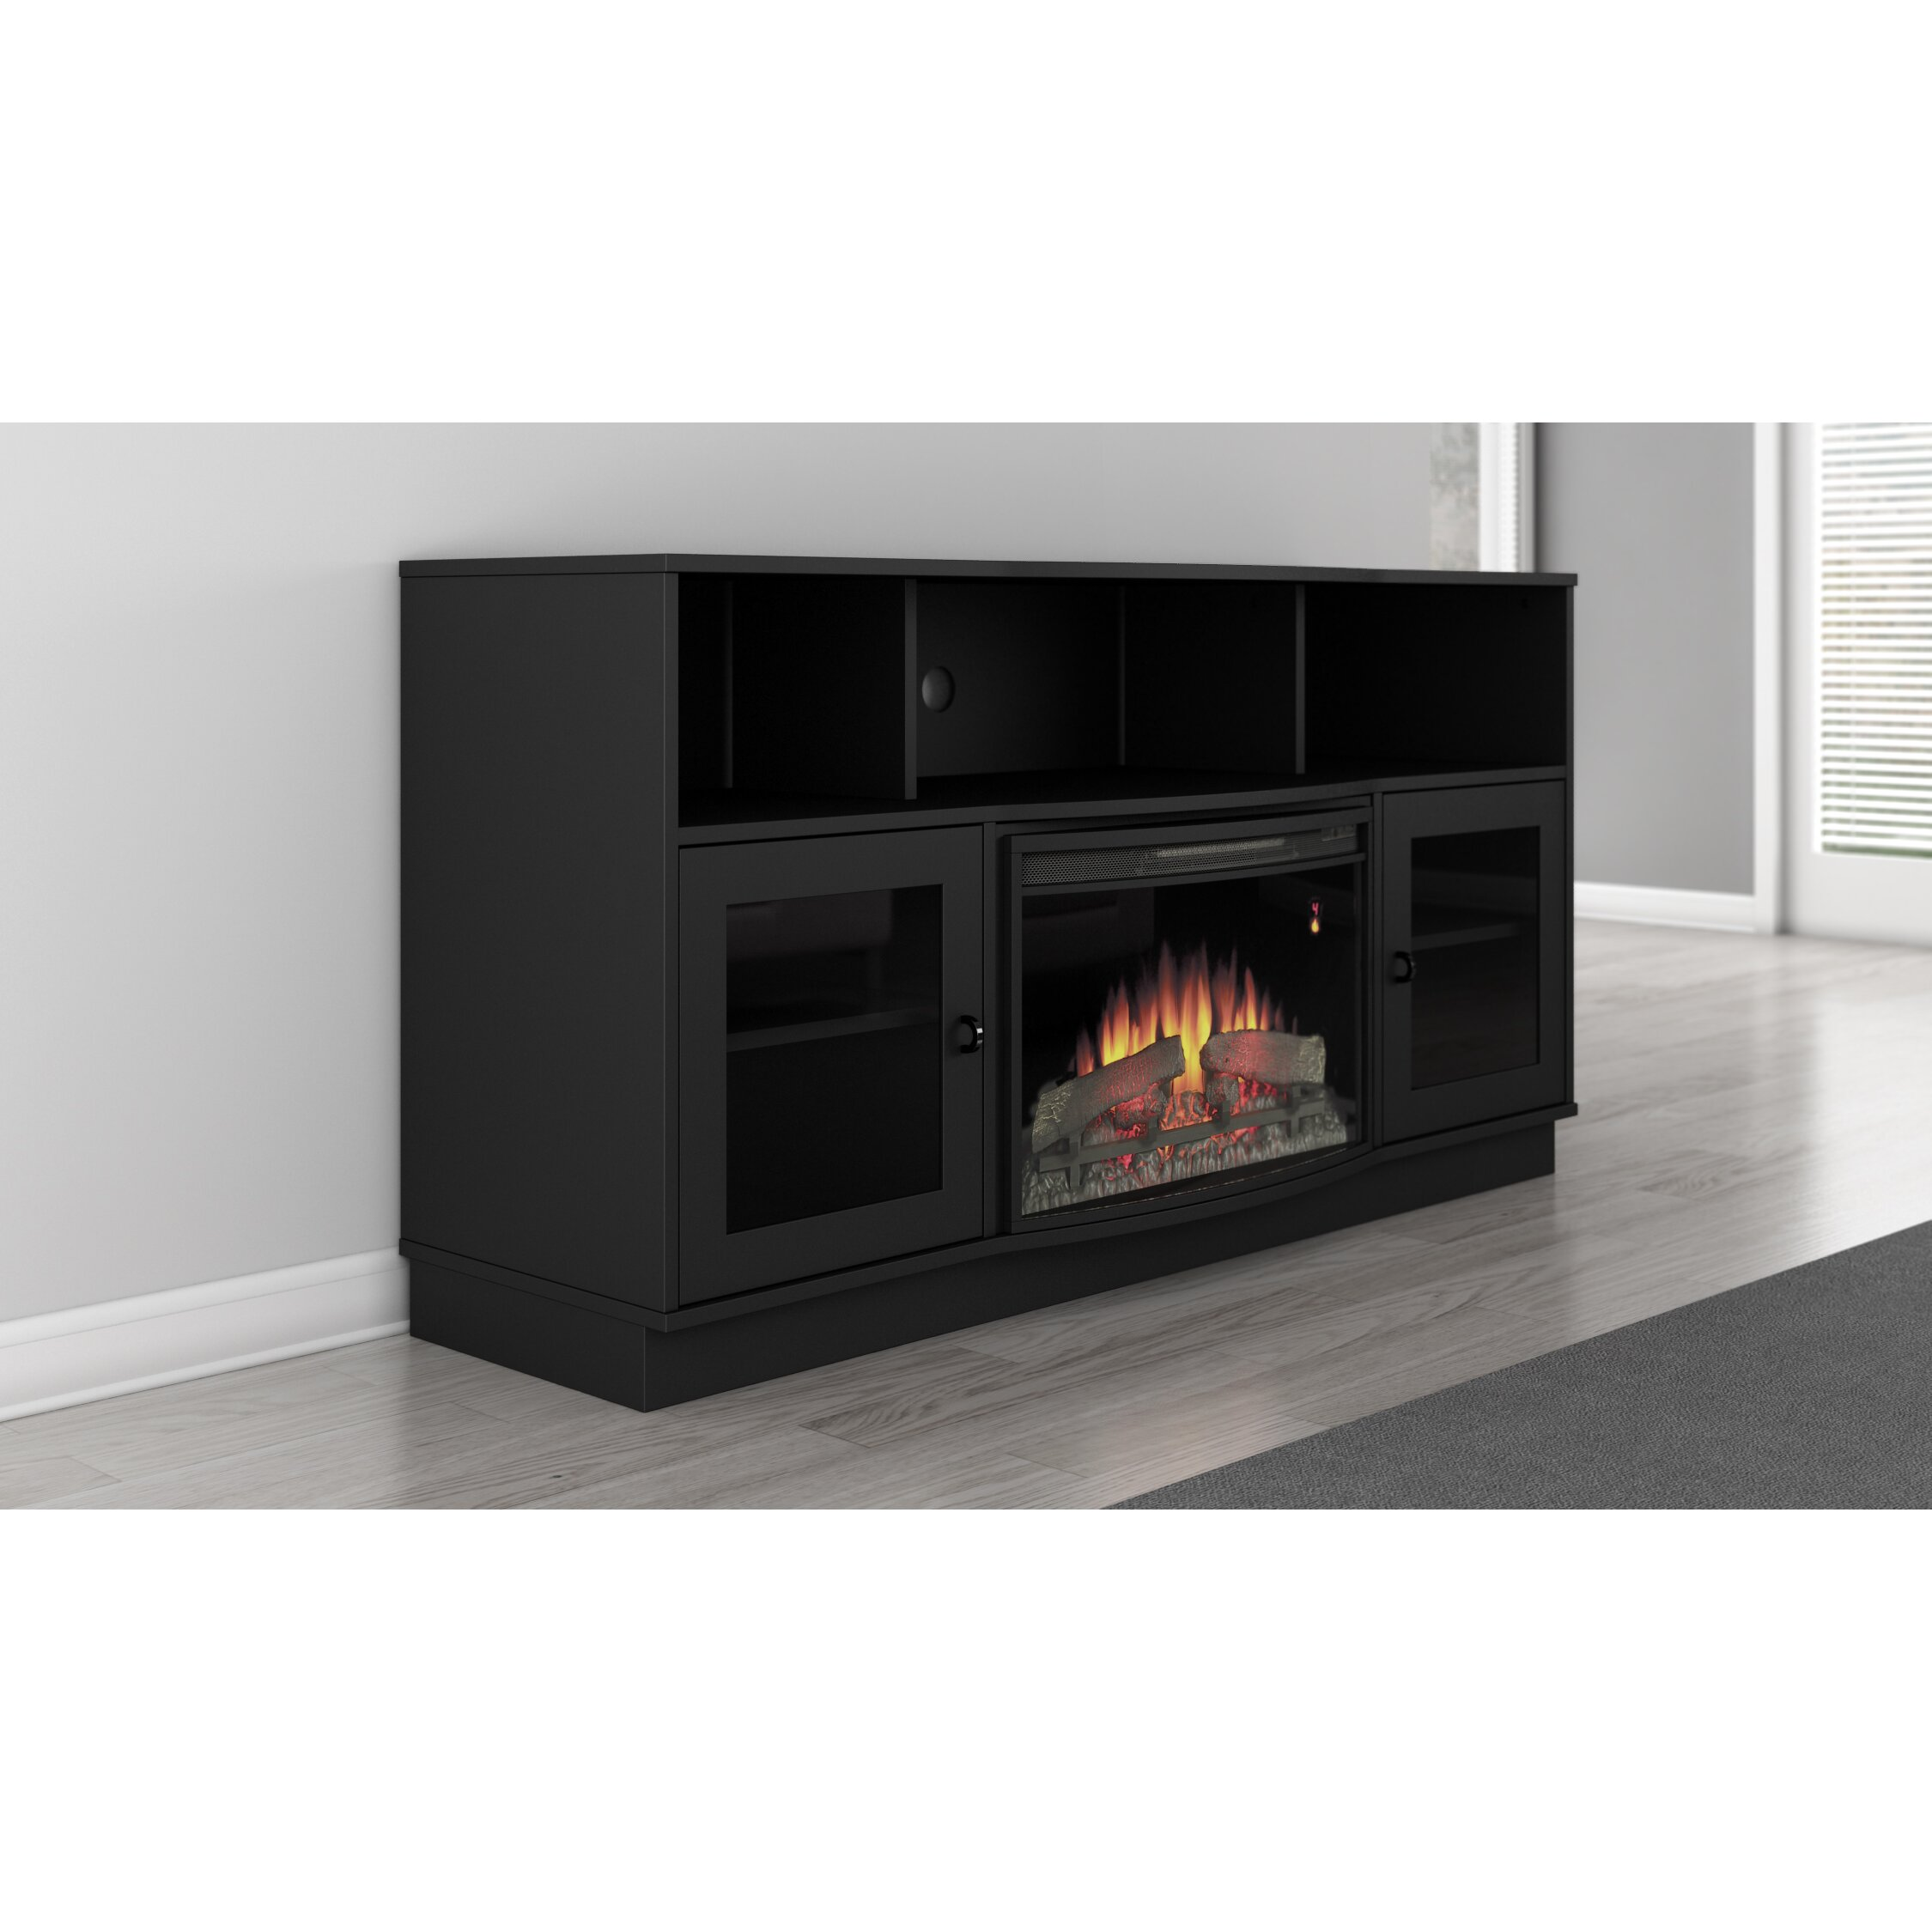 White tv stand with electric fireplace - Furnitech Contemporary Tv Stand With Electric Fireplace